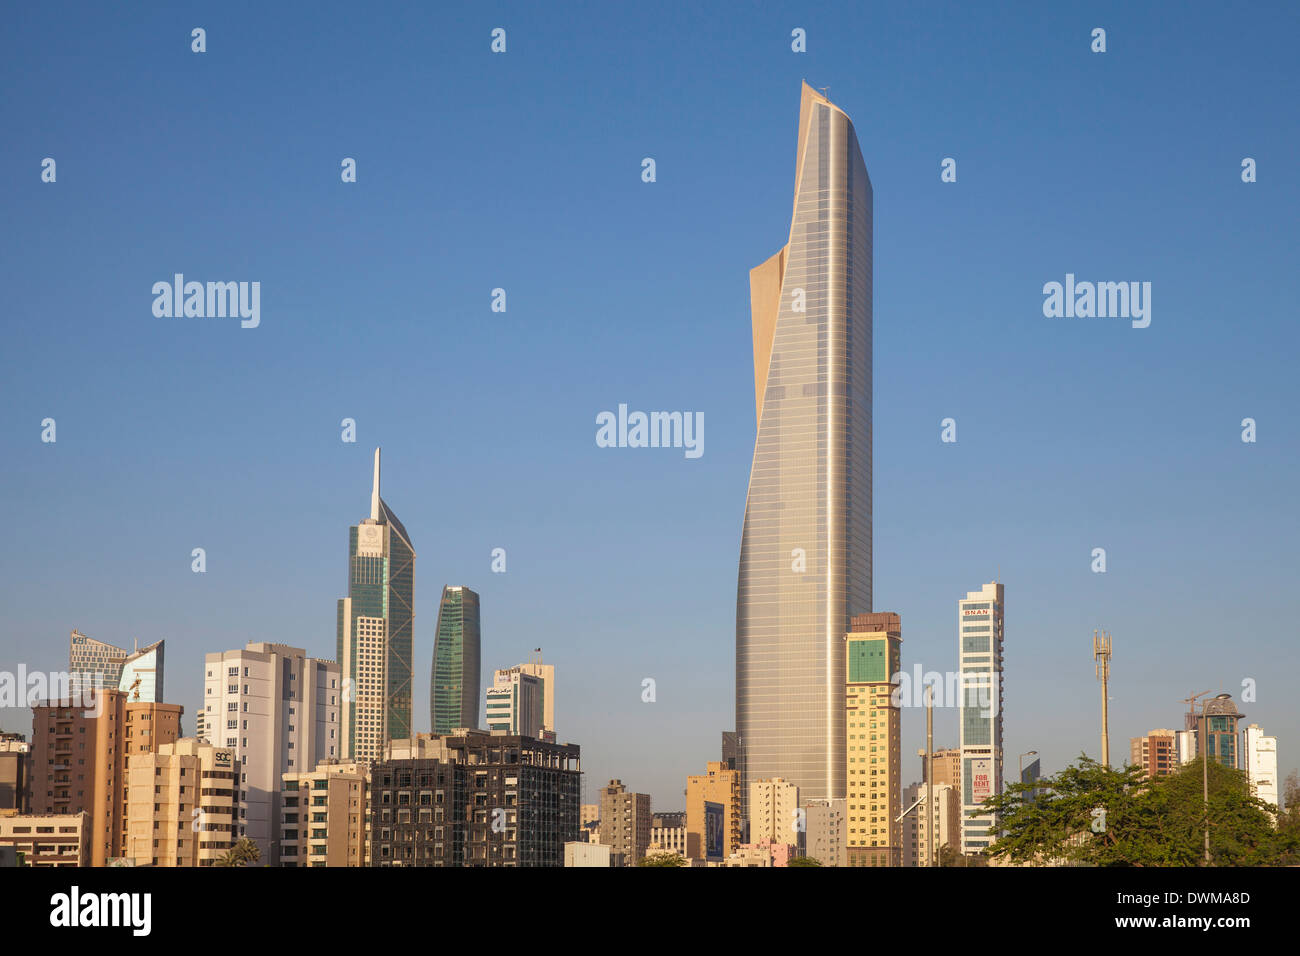 El Hamra Building, a business and luxury shopping center, Kuwait City, Kuwait, Middle East - Stock Image